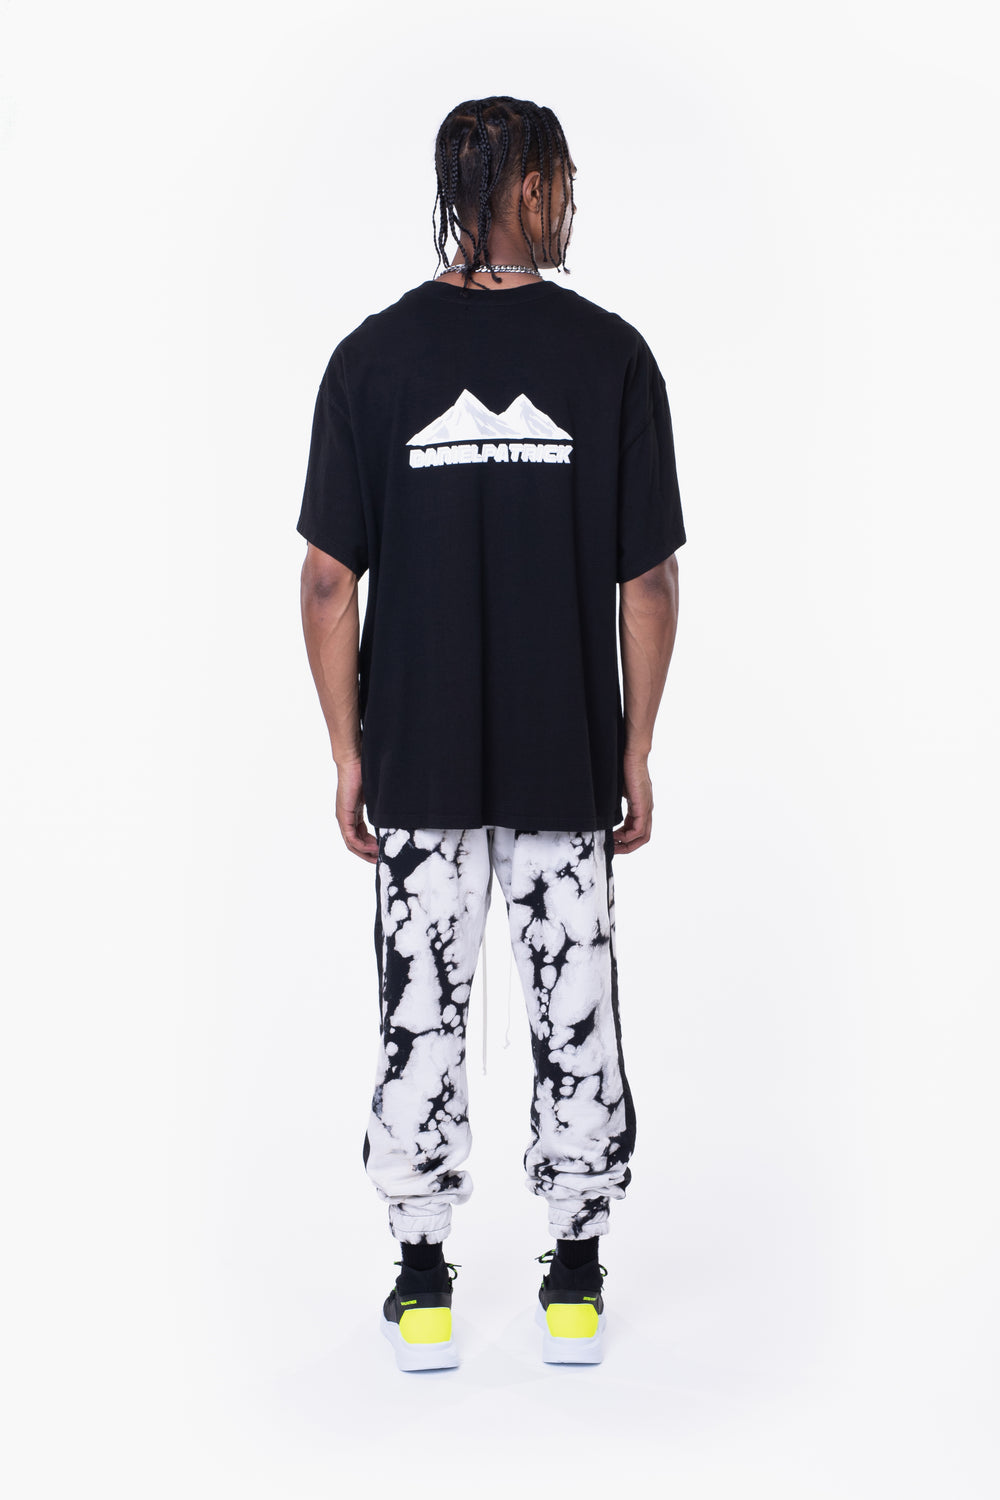 moving mountains tee / black